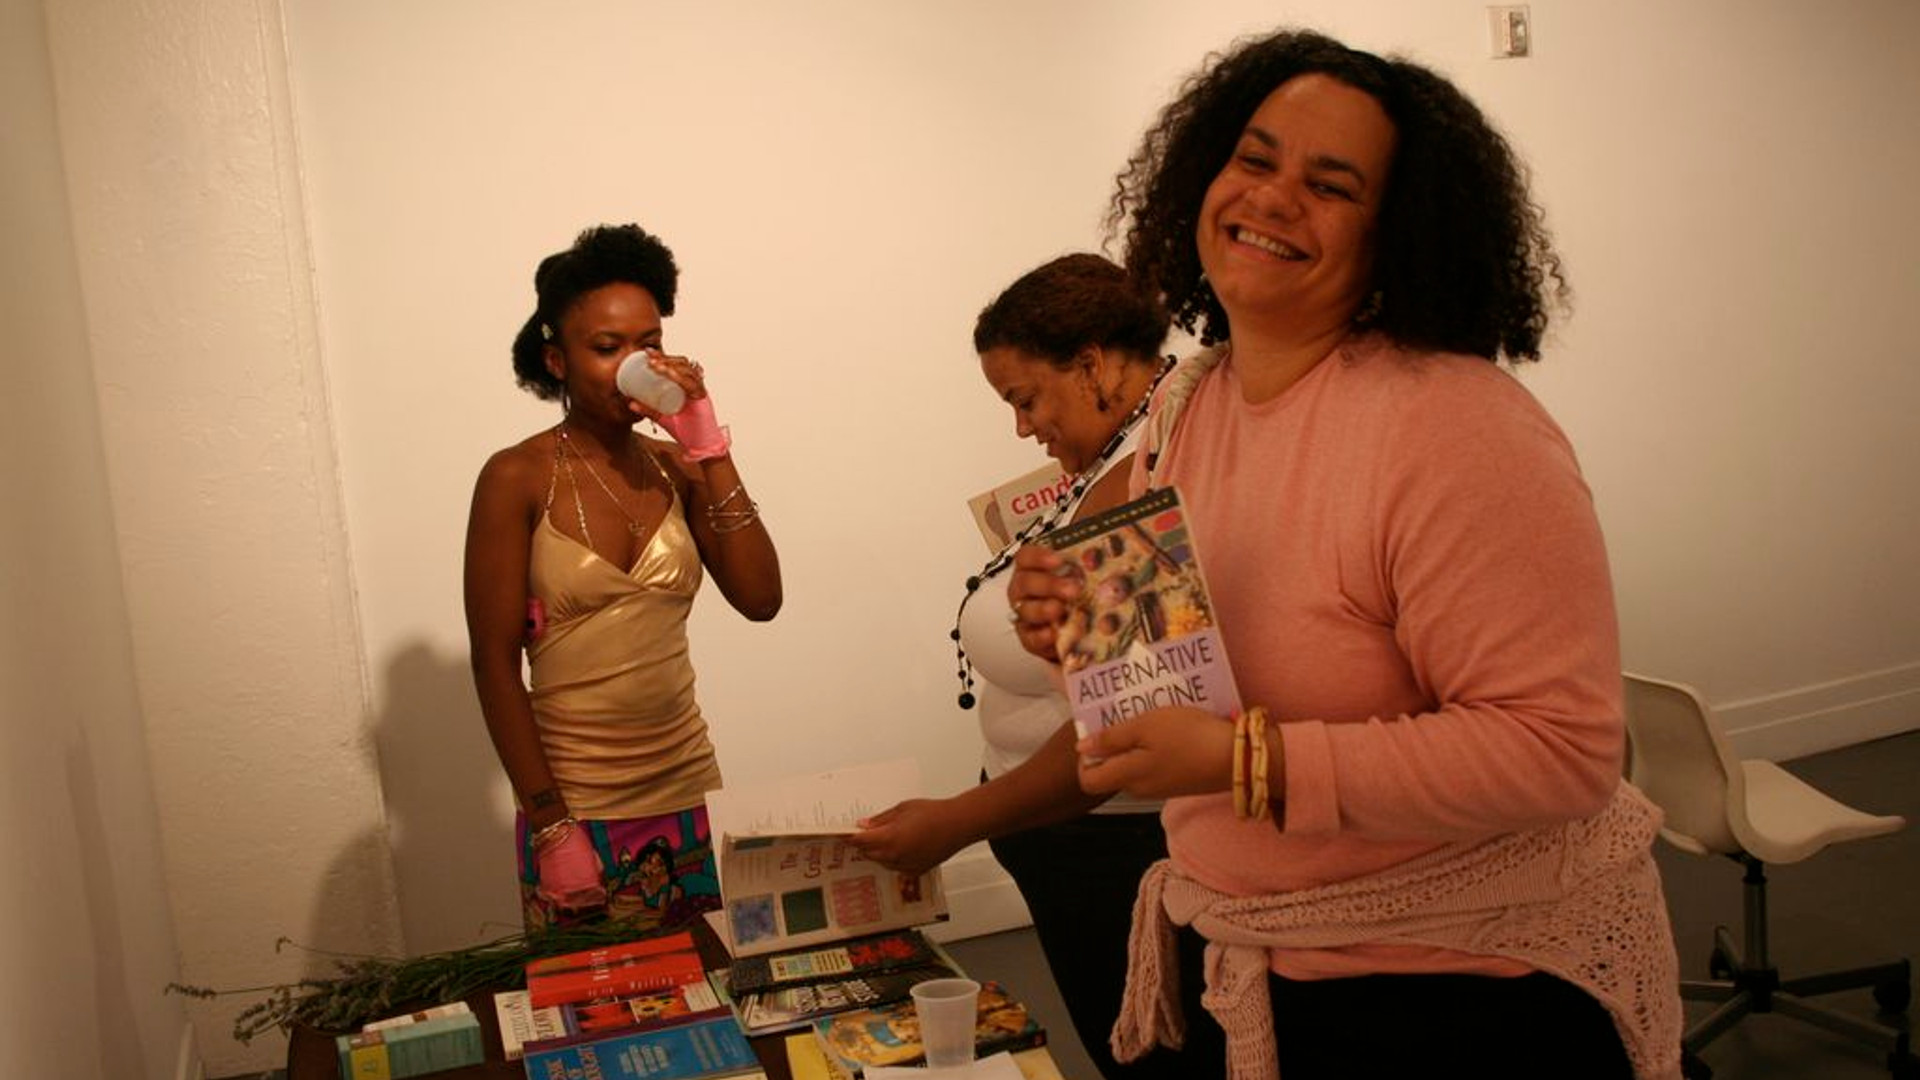 2010, Julie Novas at Self-Help Swap at A.I.R. Gallery